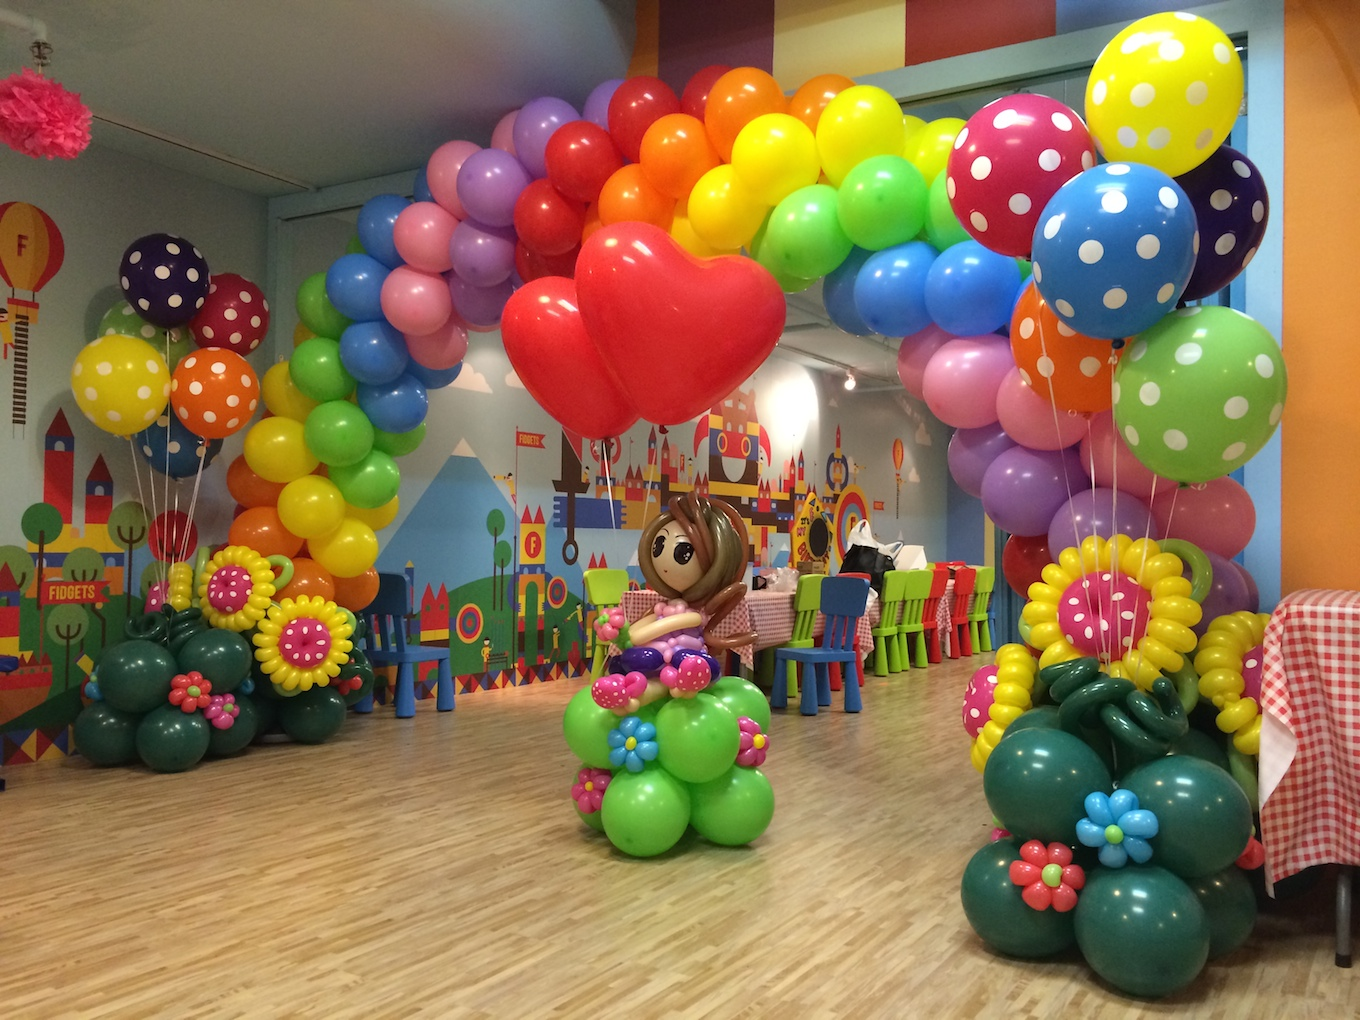 Jaipurbirthdaypackages Birthday Balloon Decorations In Jaipur